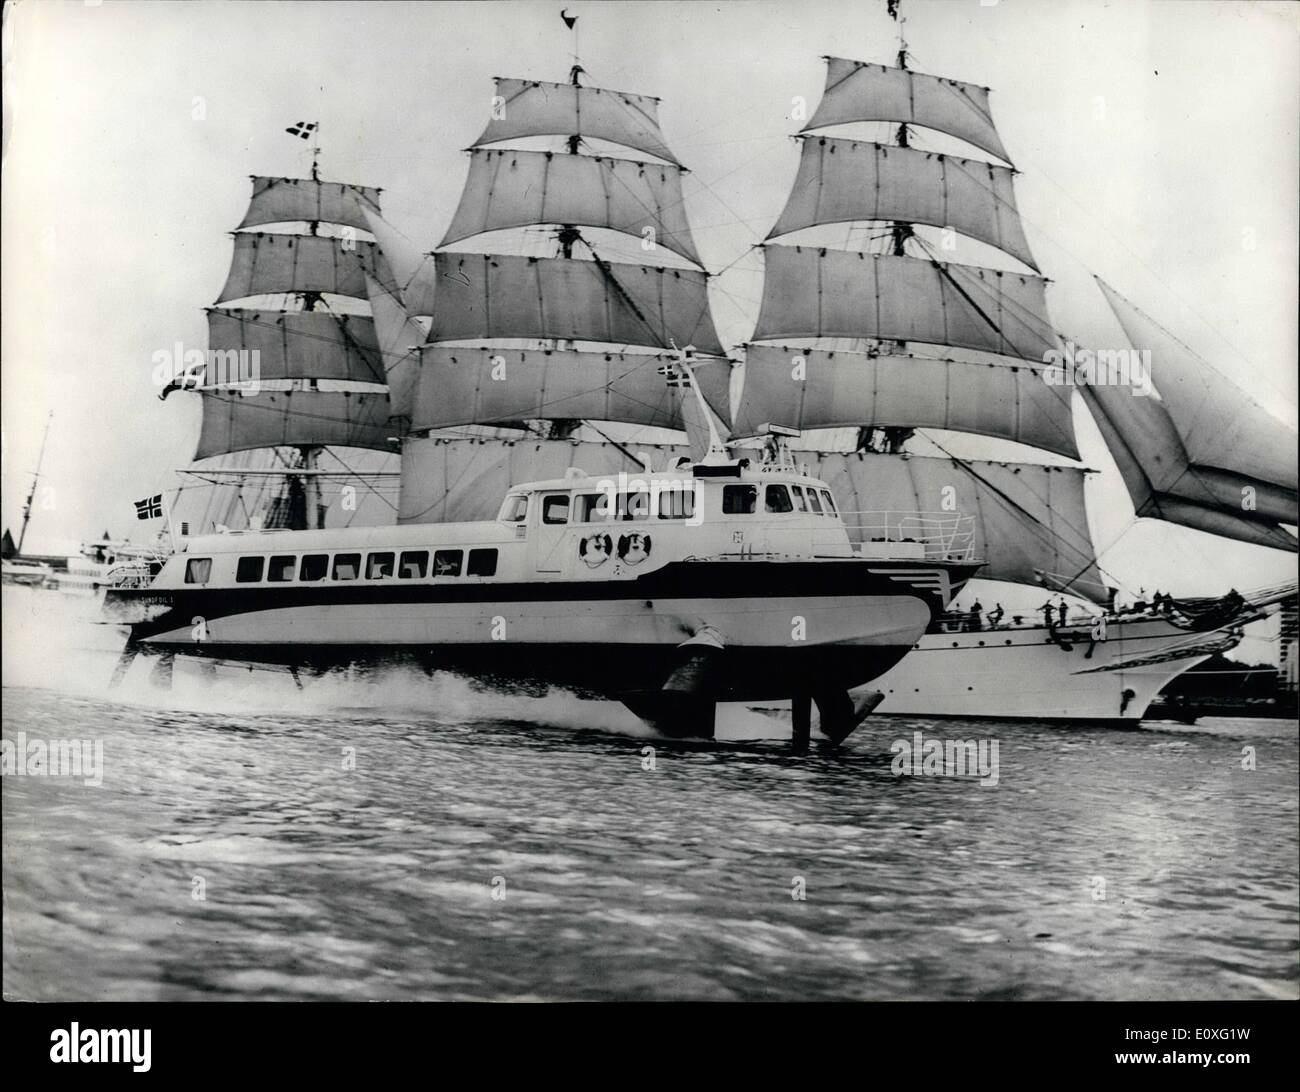 Sep. 09, 1966 - Ancient and modern in the Shipping Yard. Photo Shows: This unique picture just received from Copenhagen shows the 1350 HK hydrofoil craft Sundfoil 1 at speed as it passes the Danish sailing Training ship Danmark with 80 cadets on board in Danish waters, each represents its own charm and individuality. - Stock Image